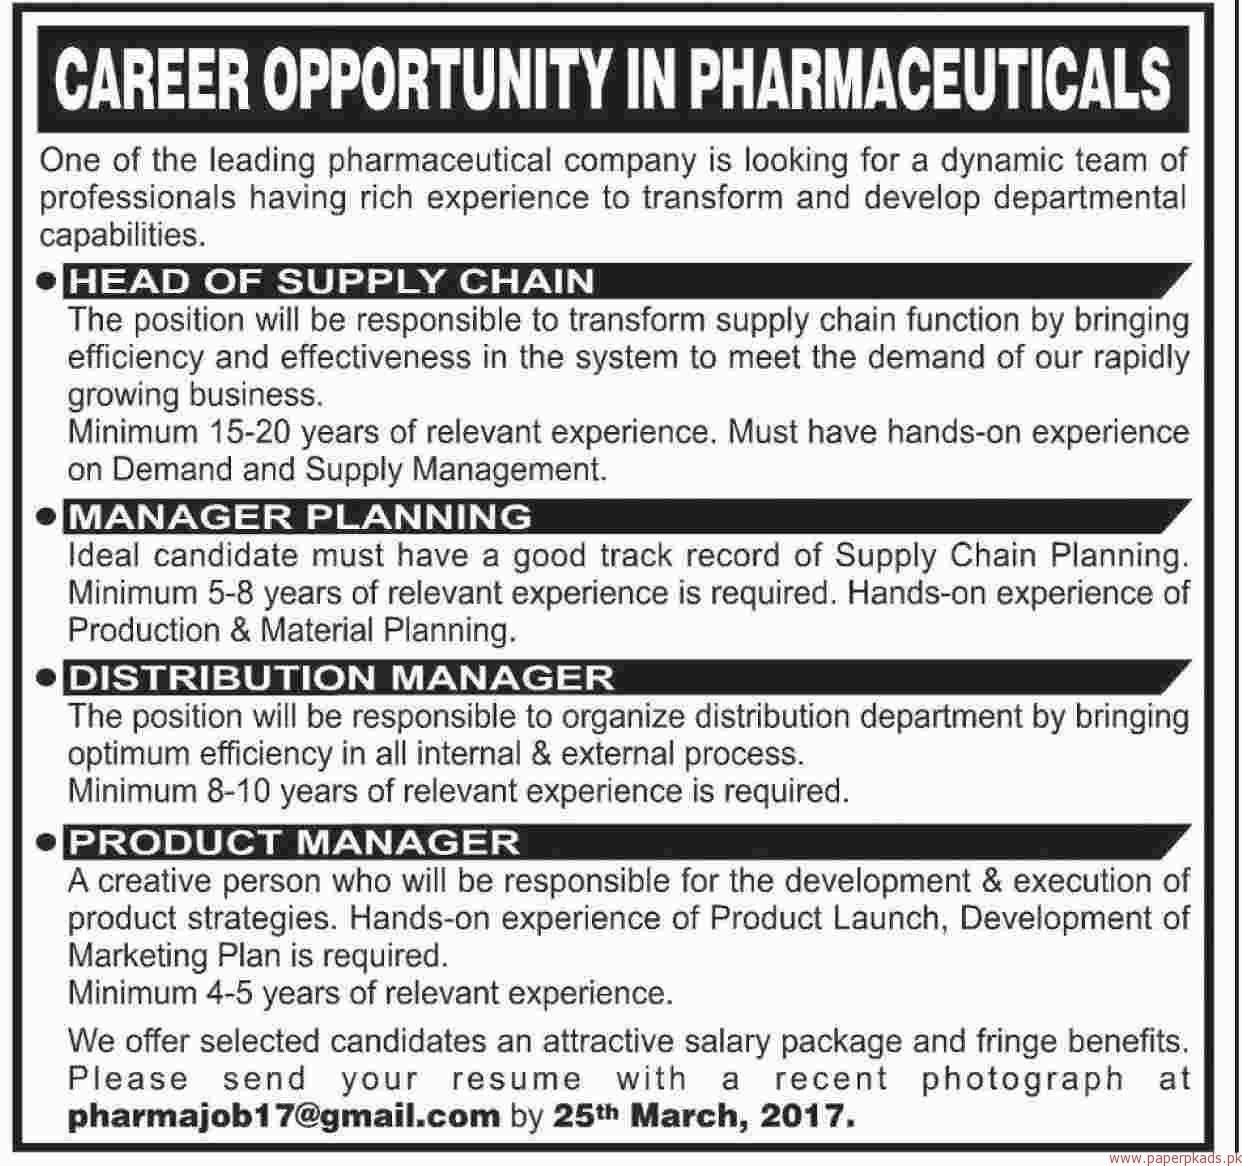 Head Of Supply Chain Manager Planning Distribution Managers Jobs U2013 Dawn  Jobs Ads 12 March 2017